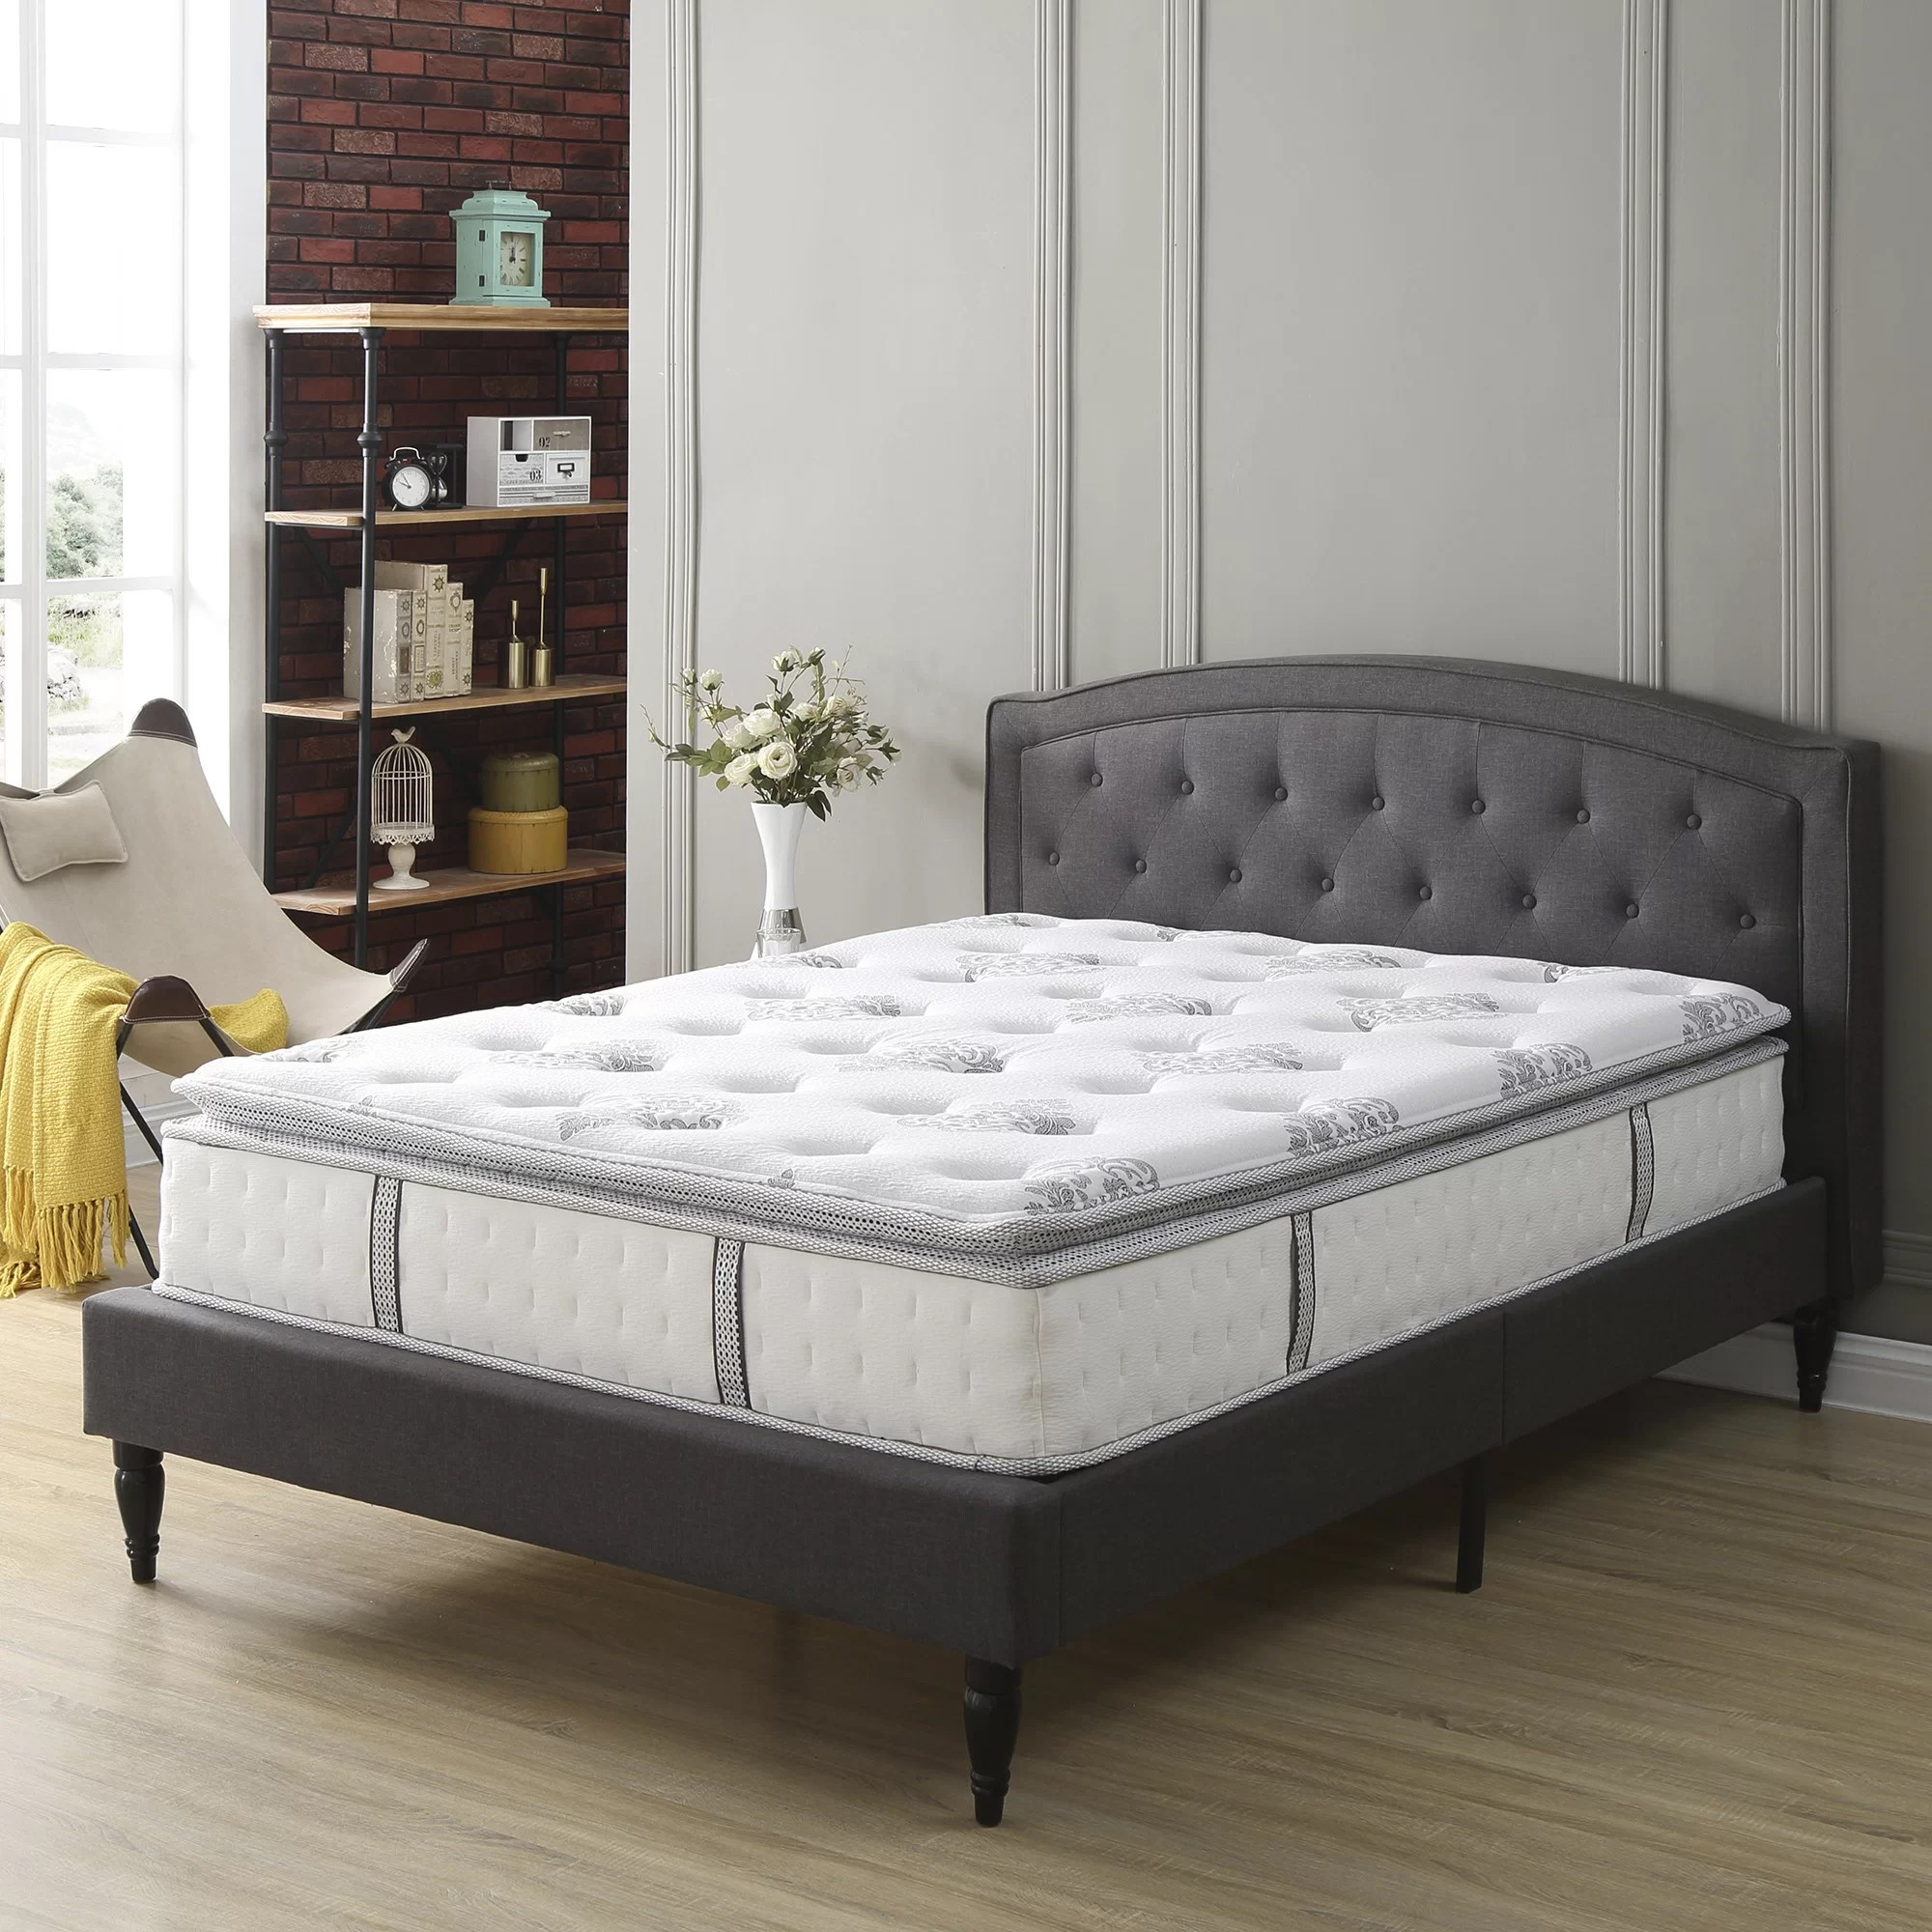 Land Of Beds Reviews Classic Brands Mercer 12